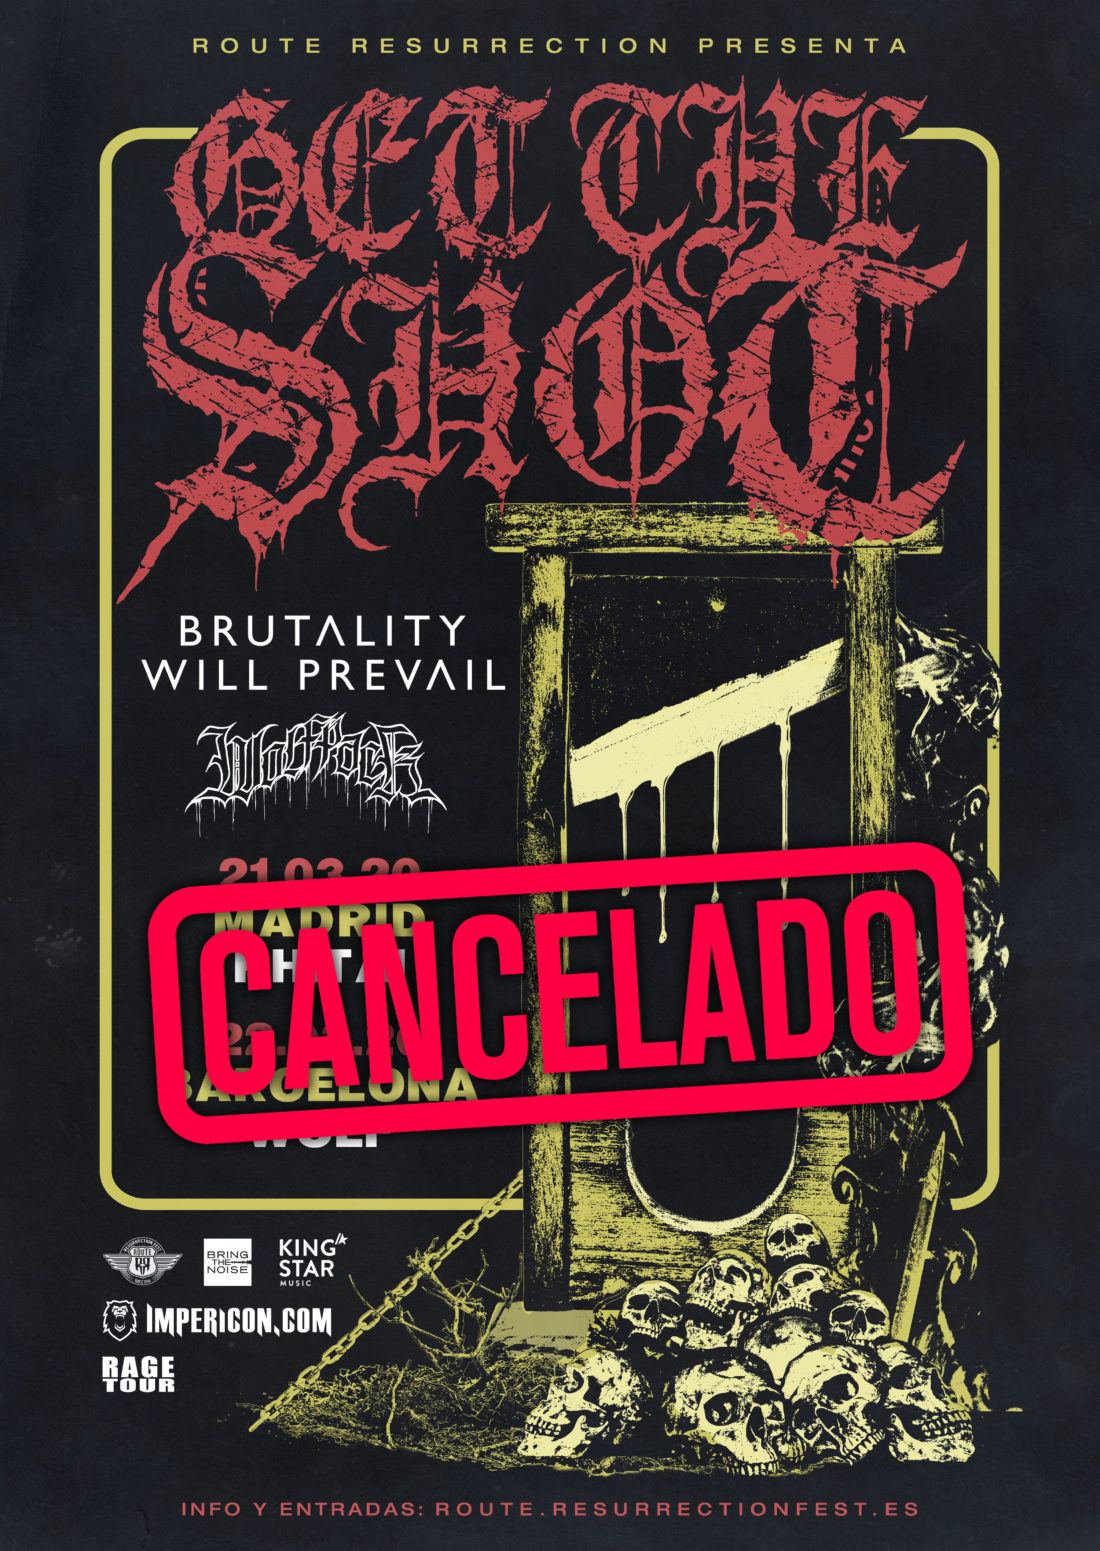 Get The Shot (gira cancelada)